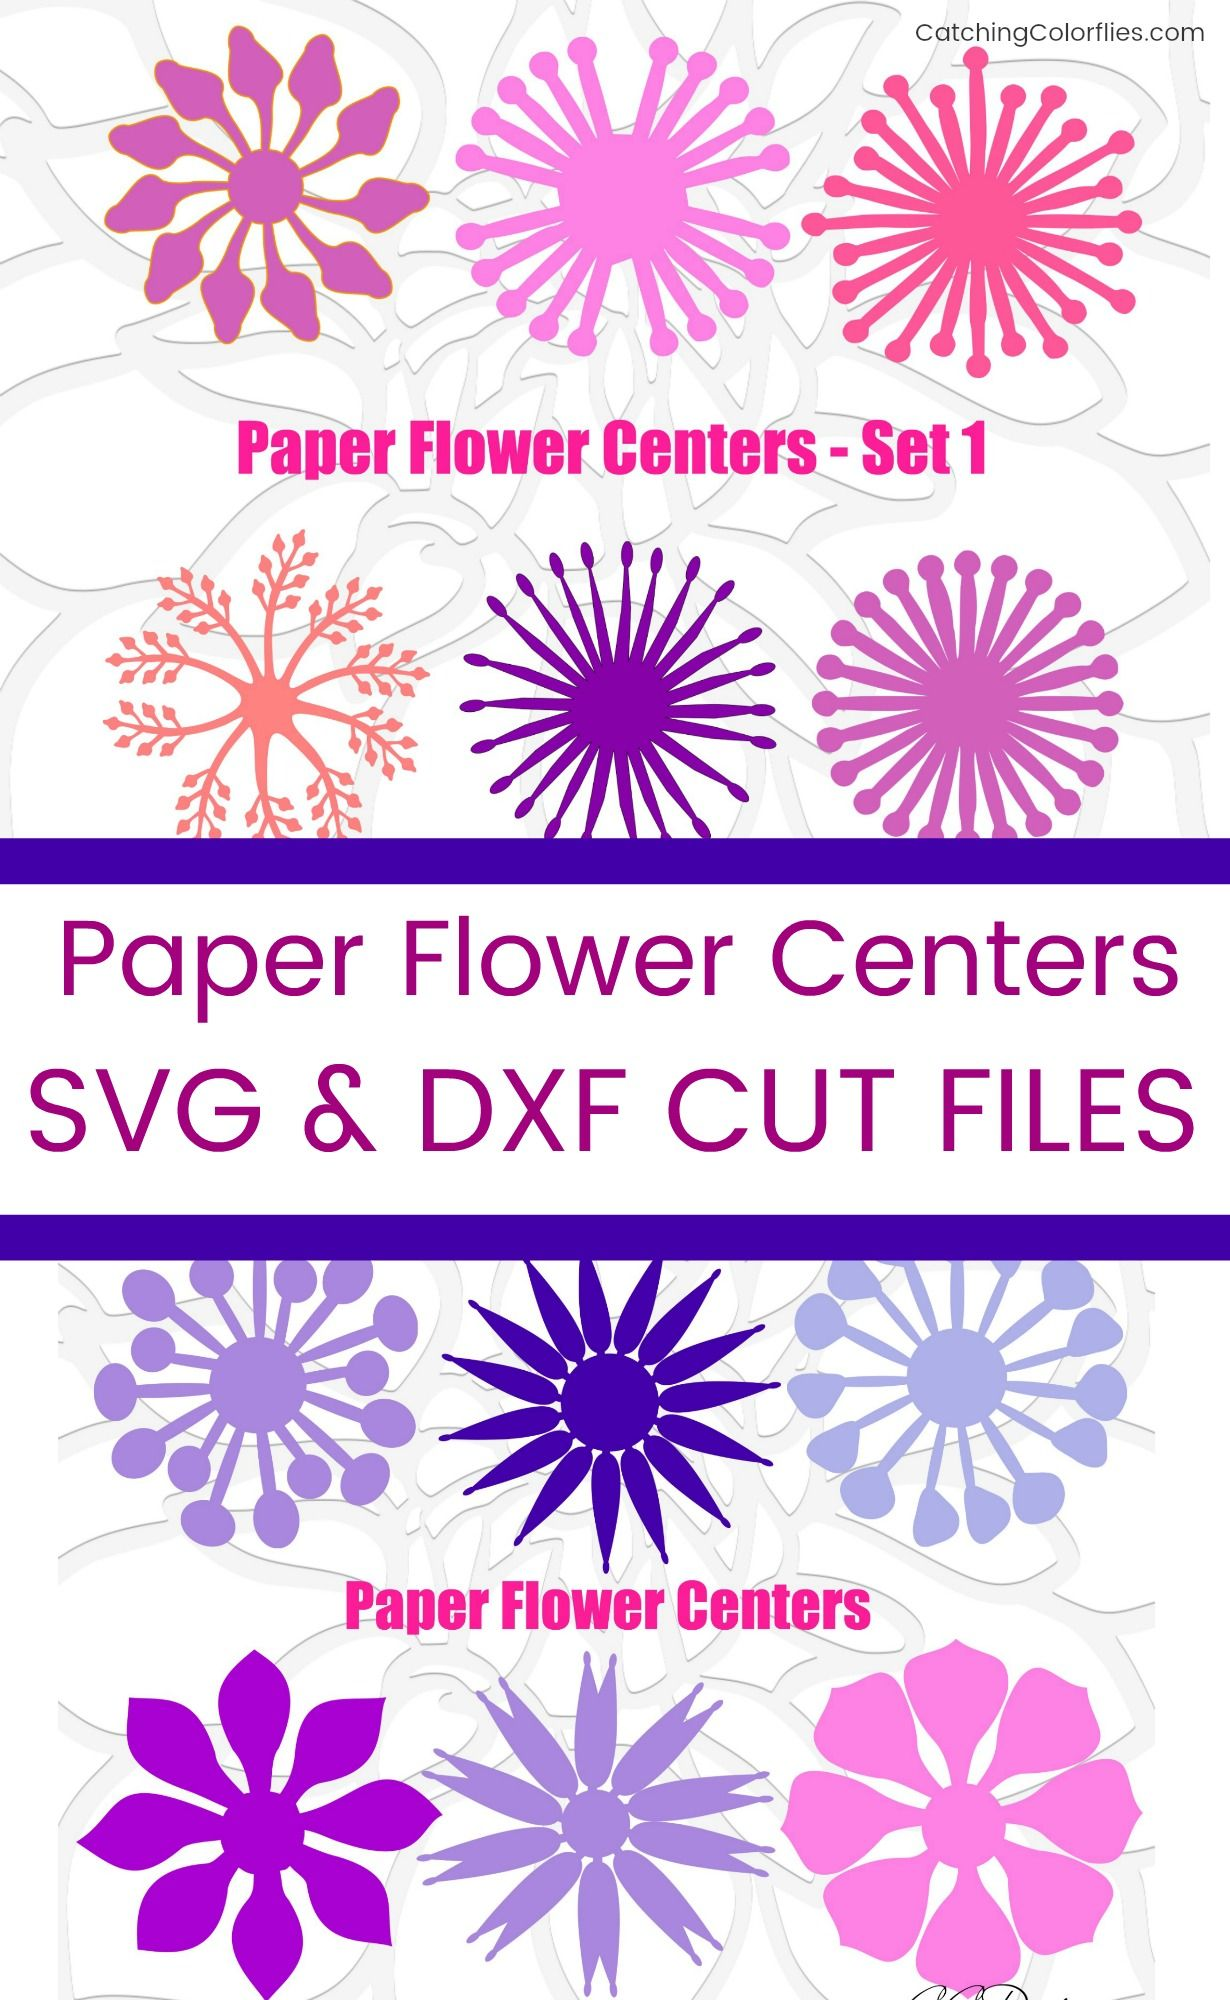 Svg Templates : templates, Paper, Flowers, Group, Board